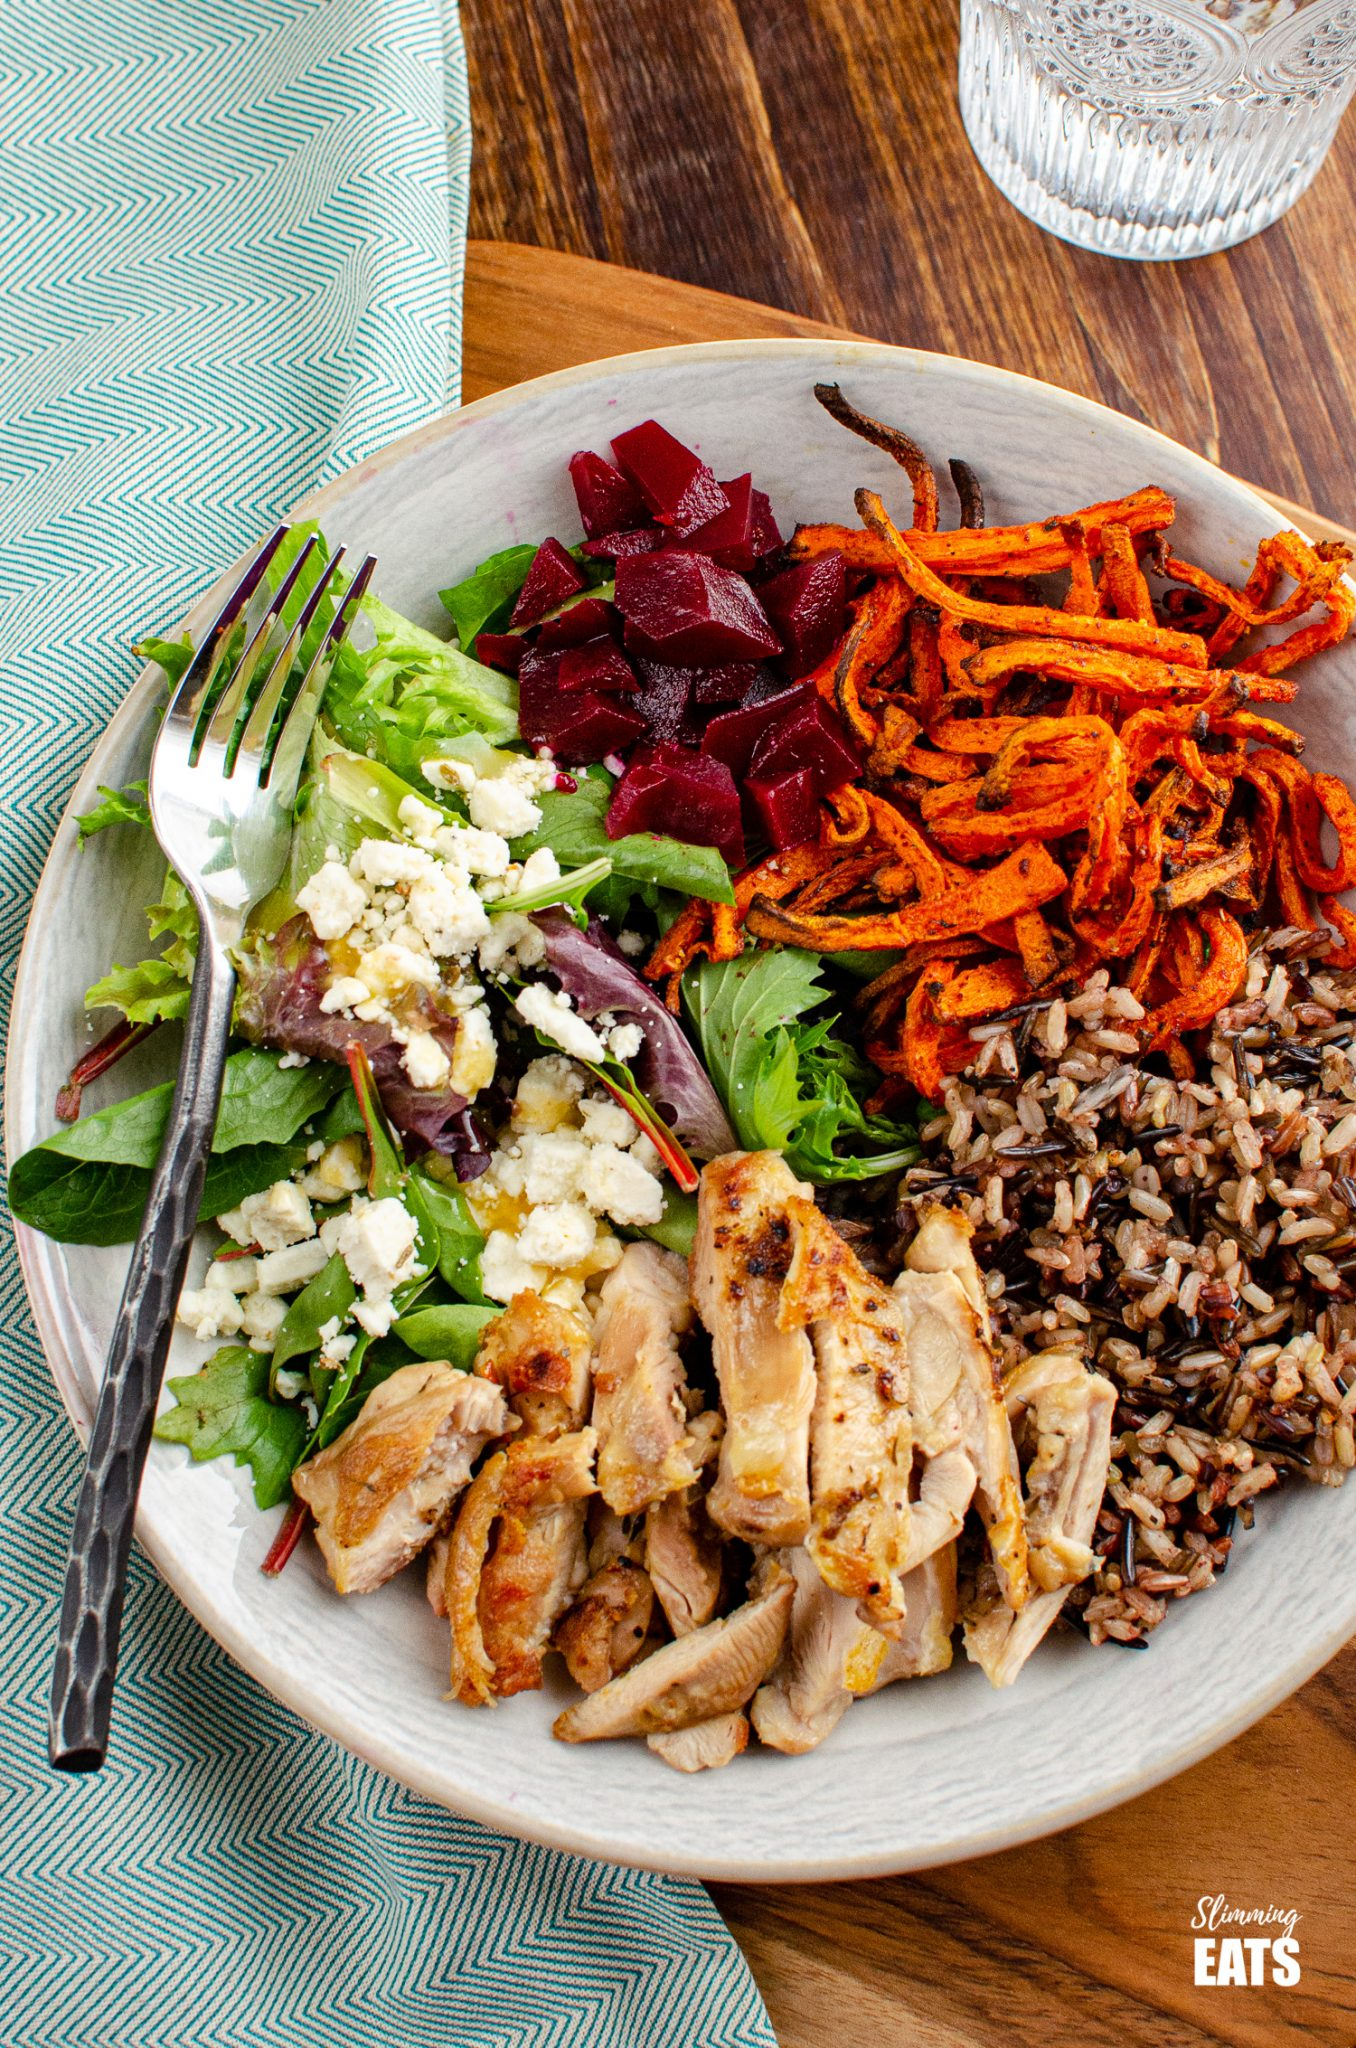 Chicken Wild Rice Bowl - tender seasoned chicken thighs with a delicious nutty wild rice blend, roasted carrot strands, salad with beets and feta in a bowl with fork